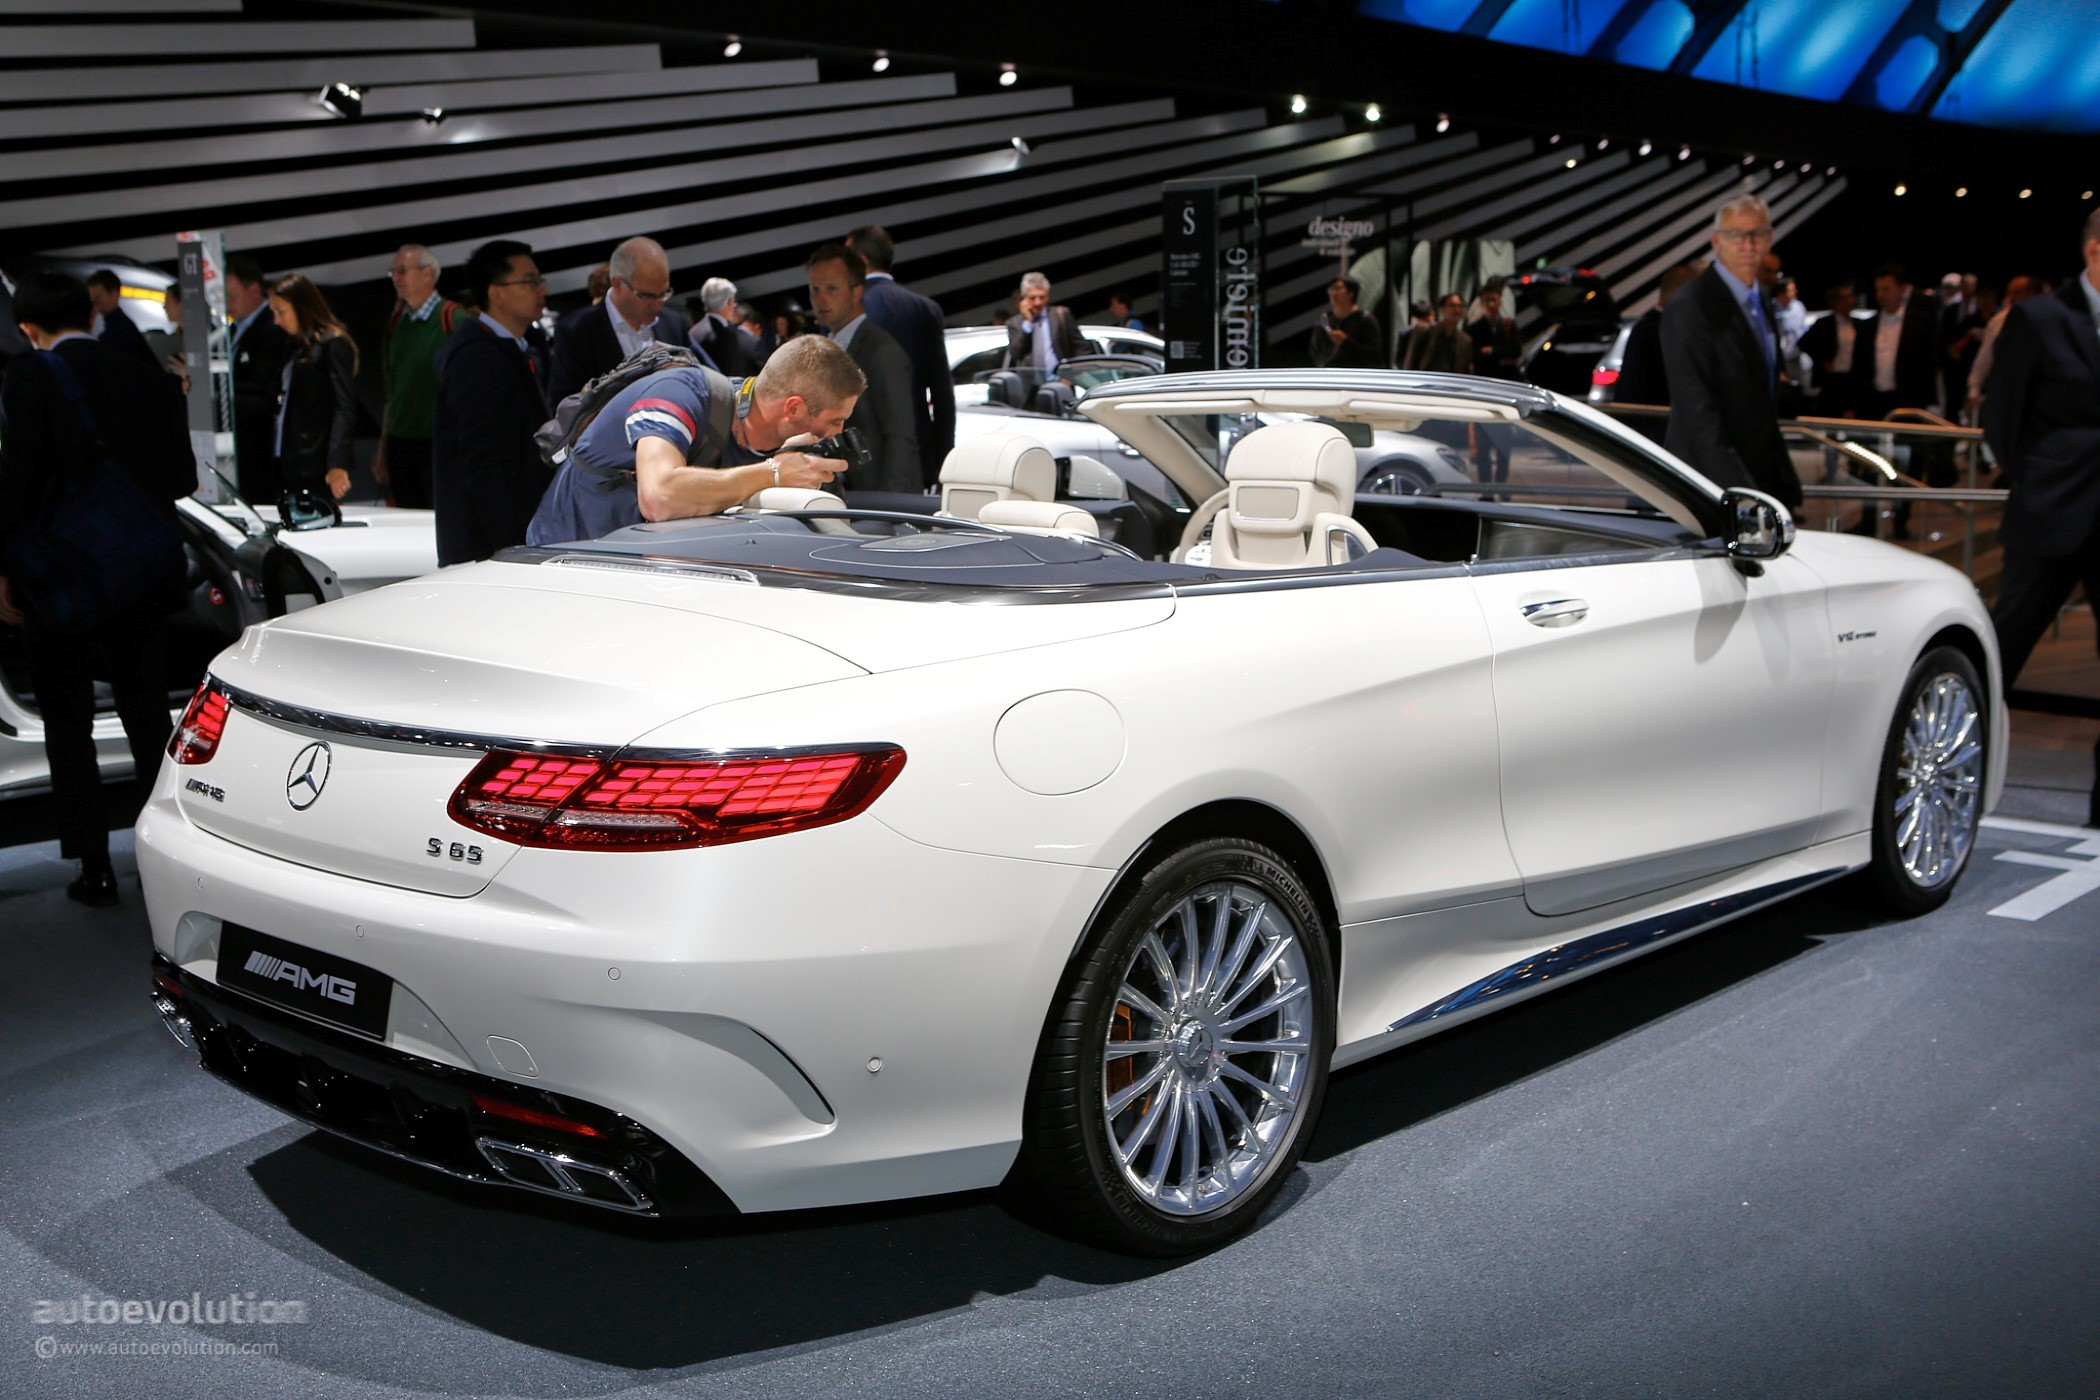 2018 Mercedes-Benz S-Class Coupe/Cabriolet Show Off OLED Taillights ...